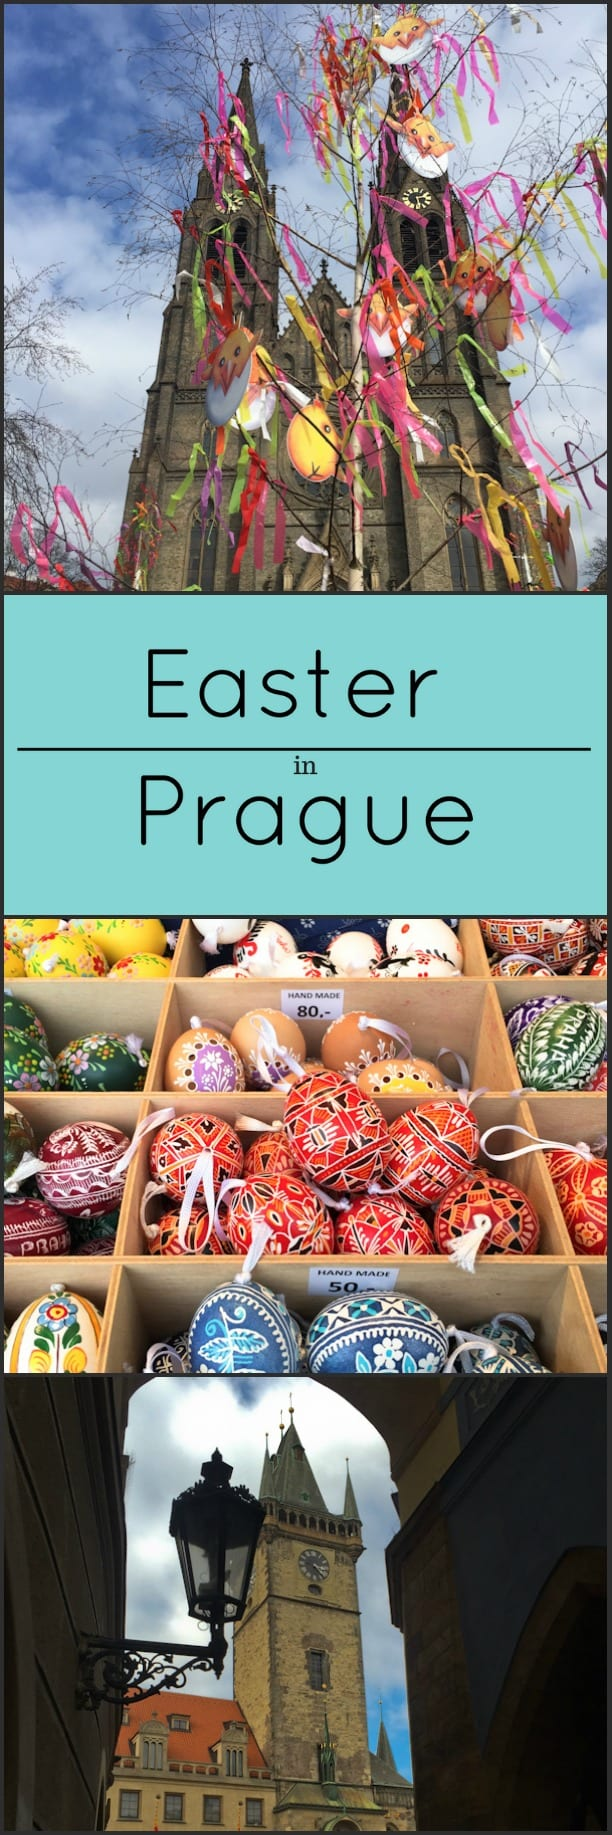 Easter in Prague, Czech Republic.